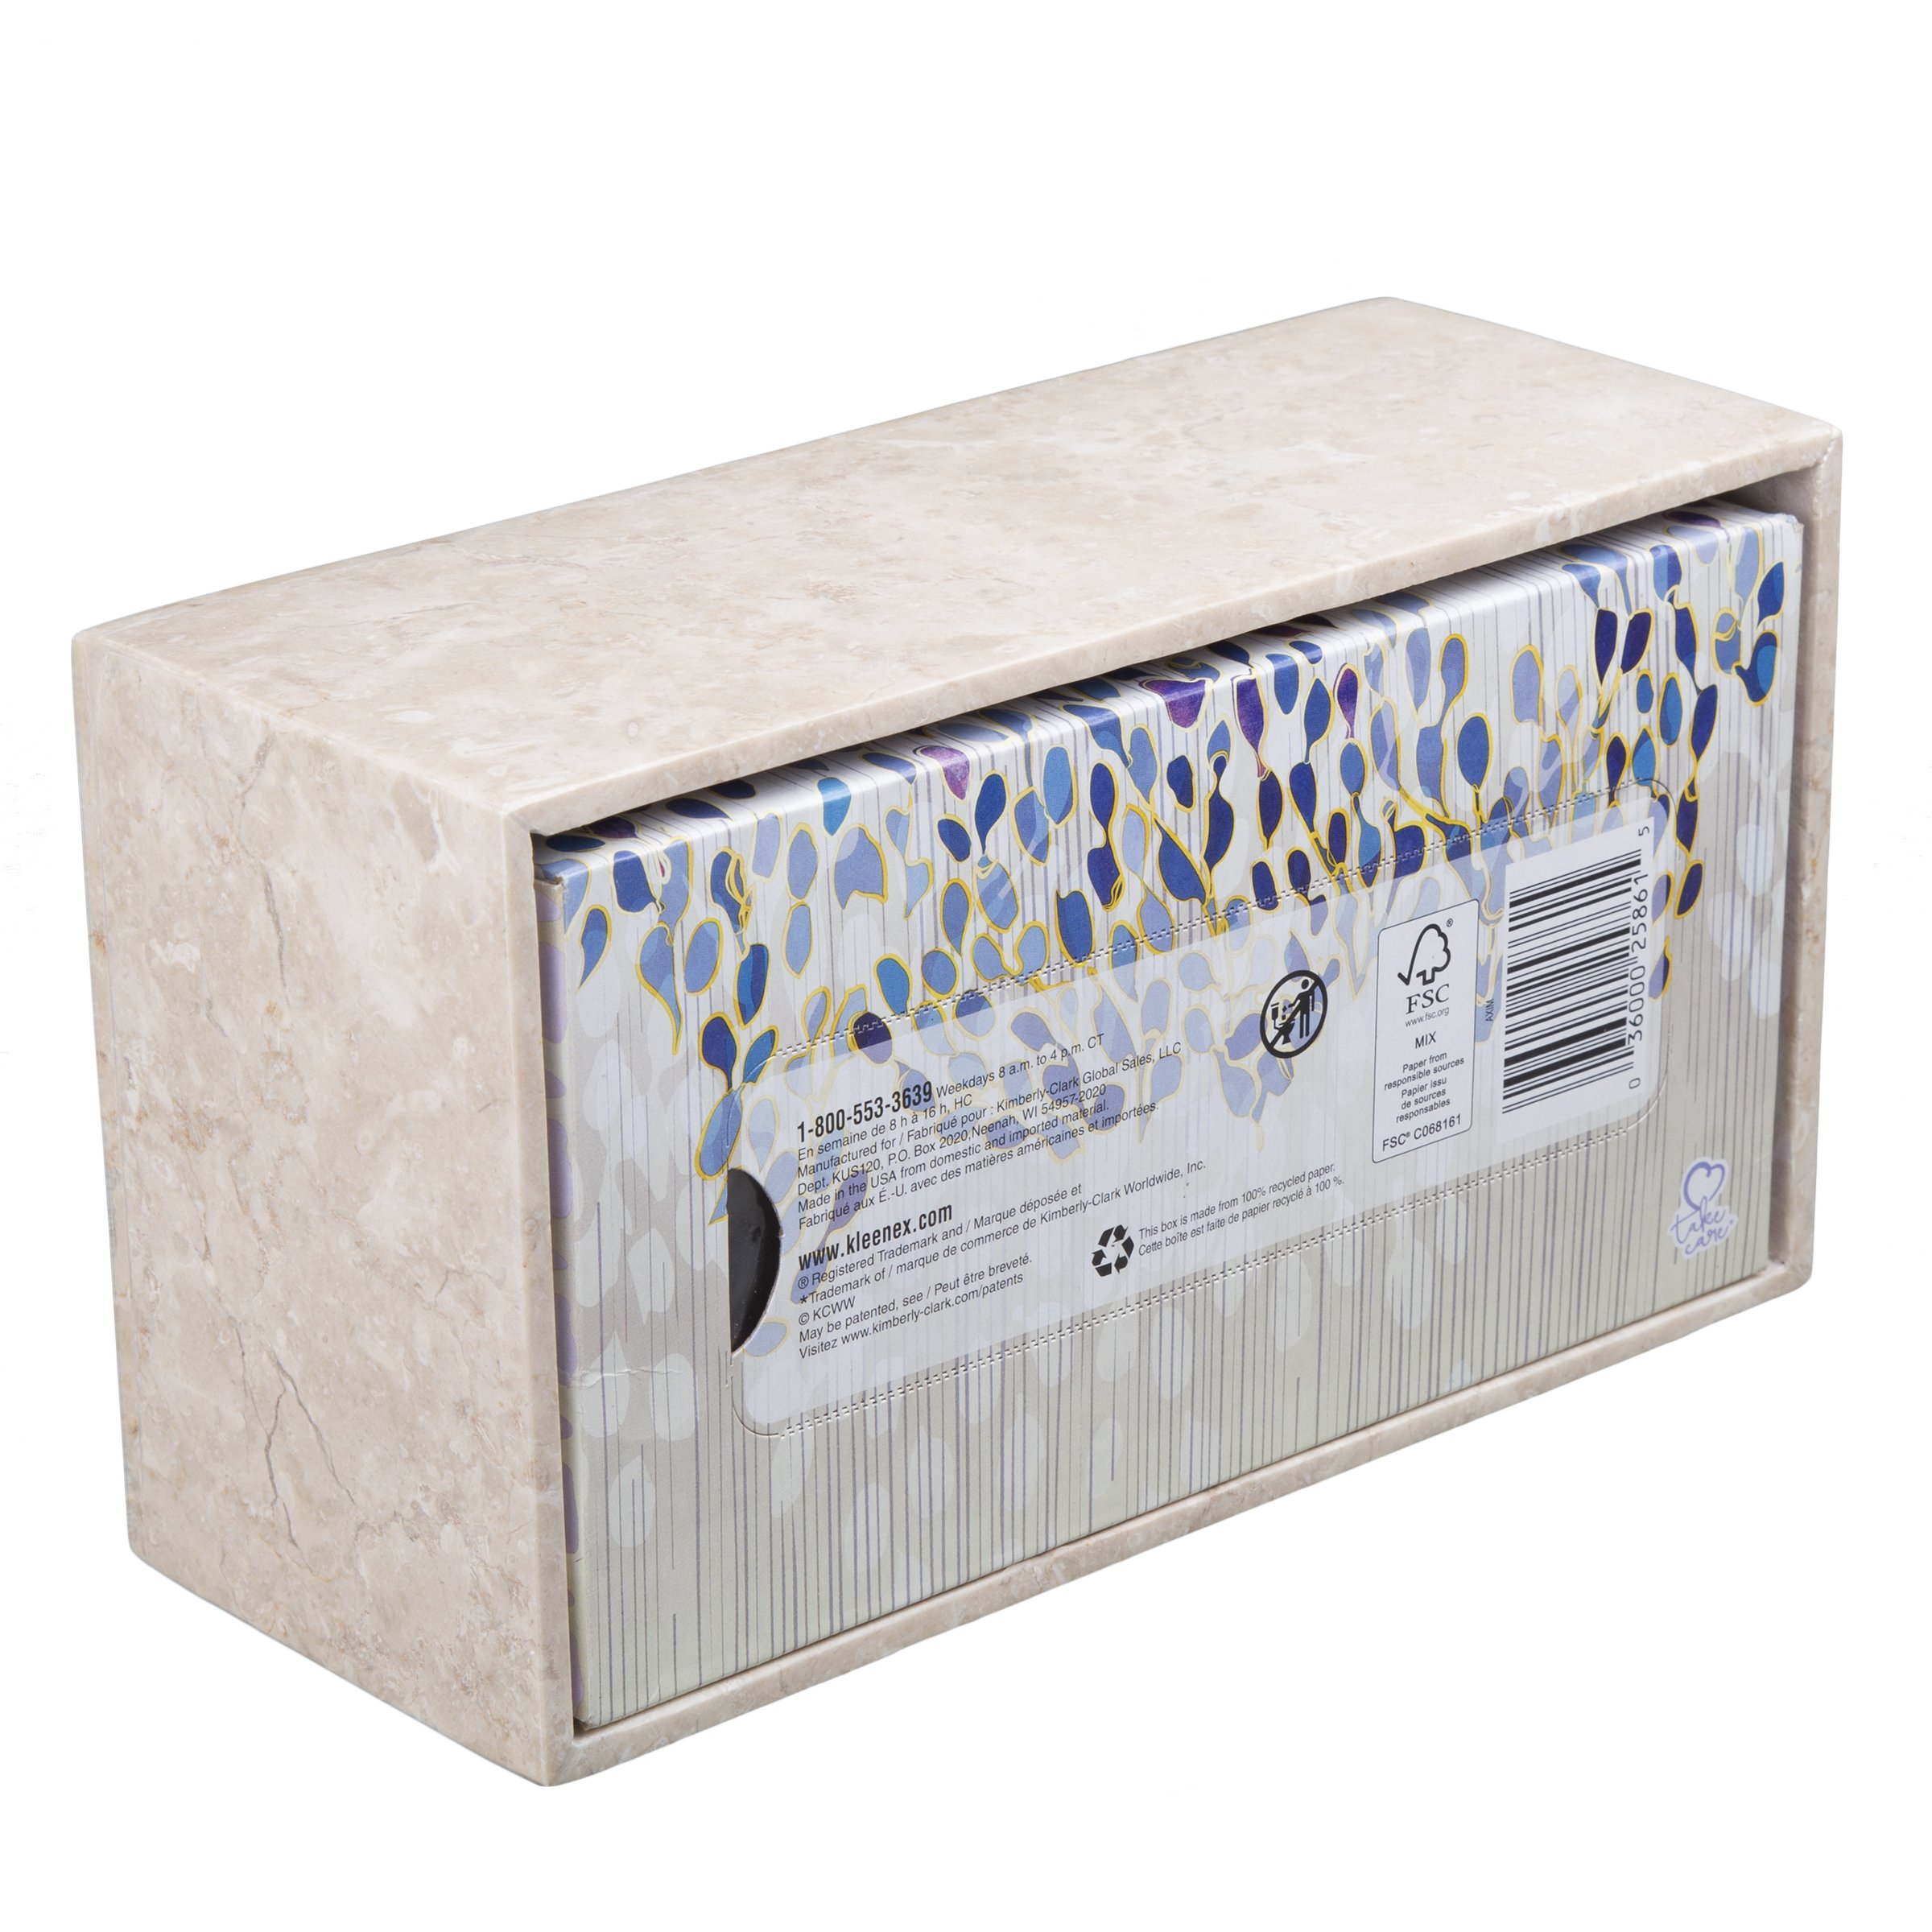 Creative Home Champagne Marble Stone Rectangular Tissue Box Holder Cover 9-1/2'' L x 5-1/4'' W x 3-1/2'' H Beige by Creative Home (Image #5)